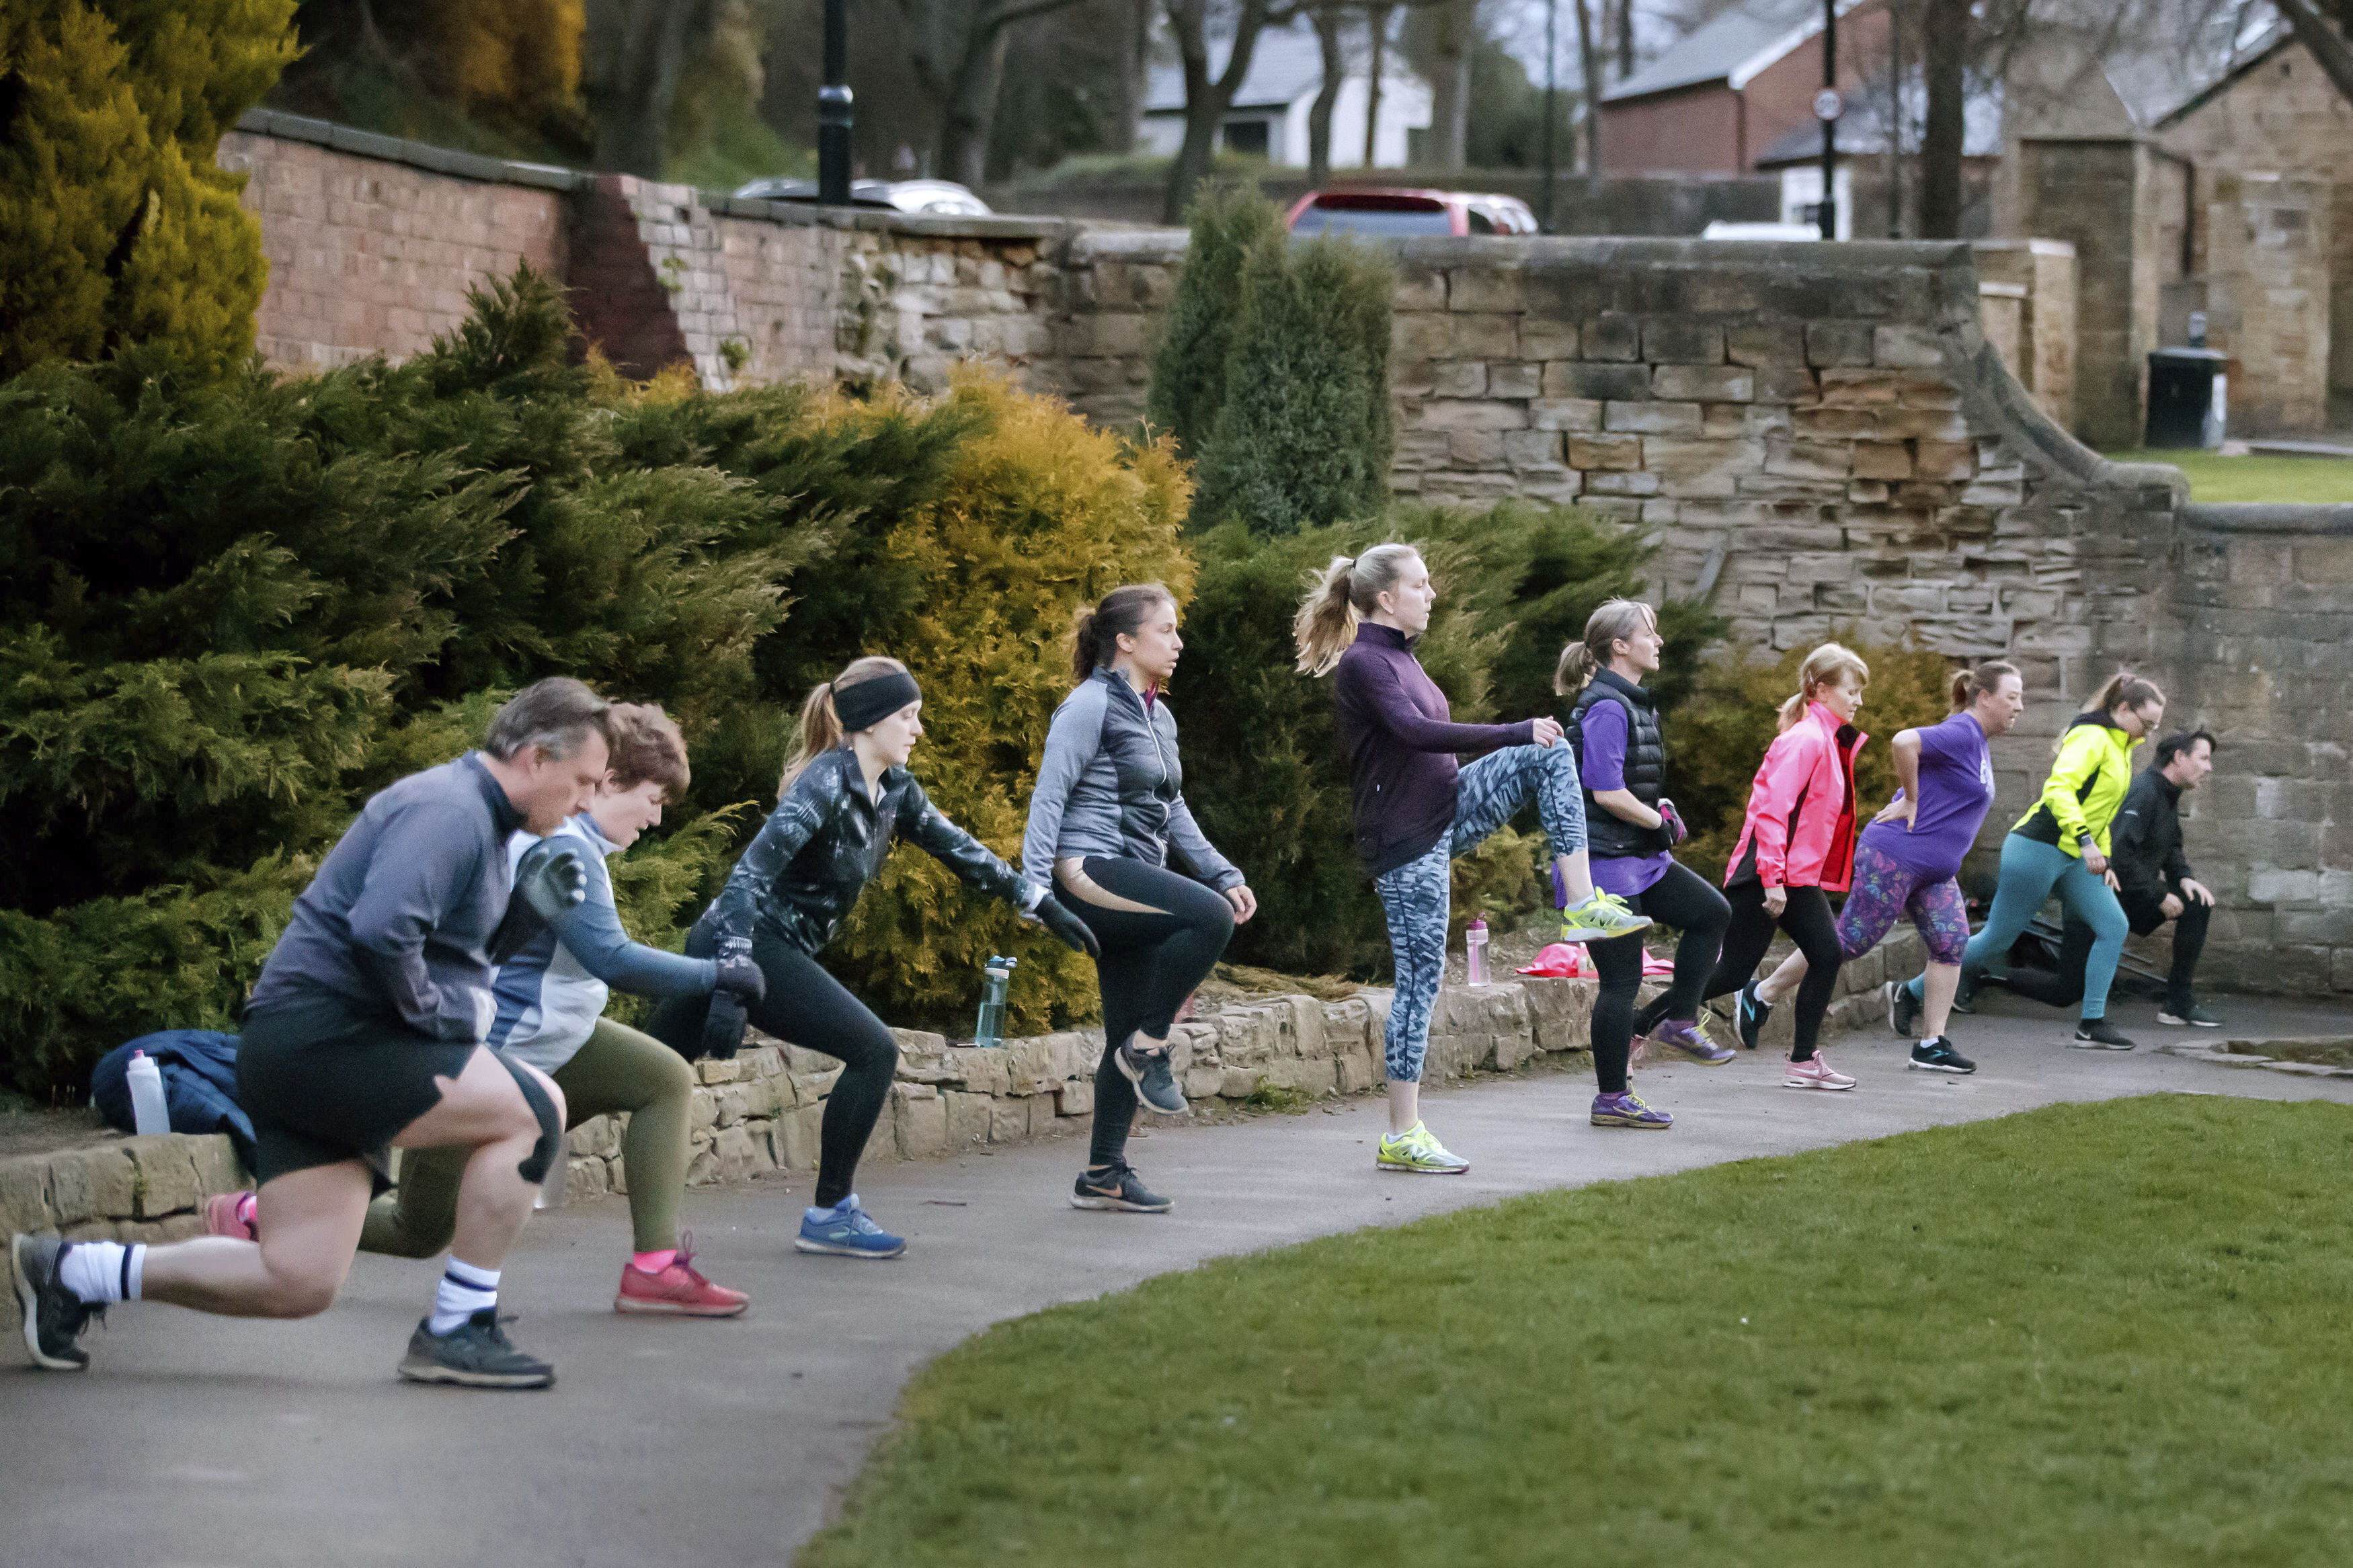 People take part in an exercise class, following the easing of England's lockdown, on Monday March 29, in Rothwell, West Yorkshire.